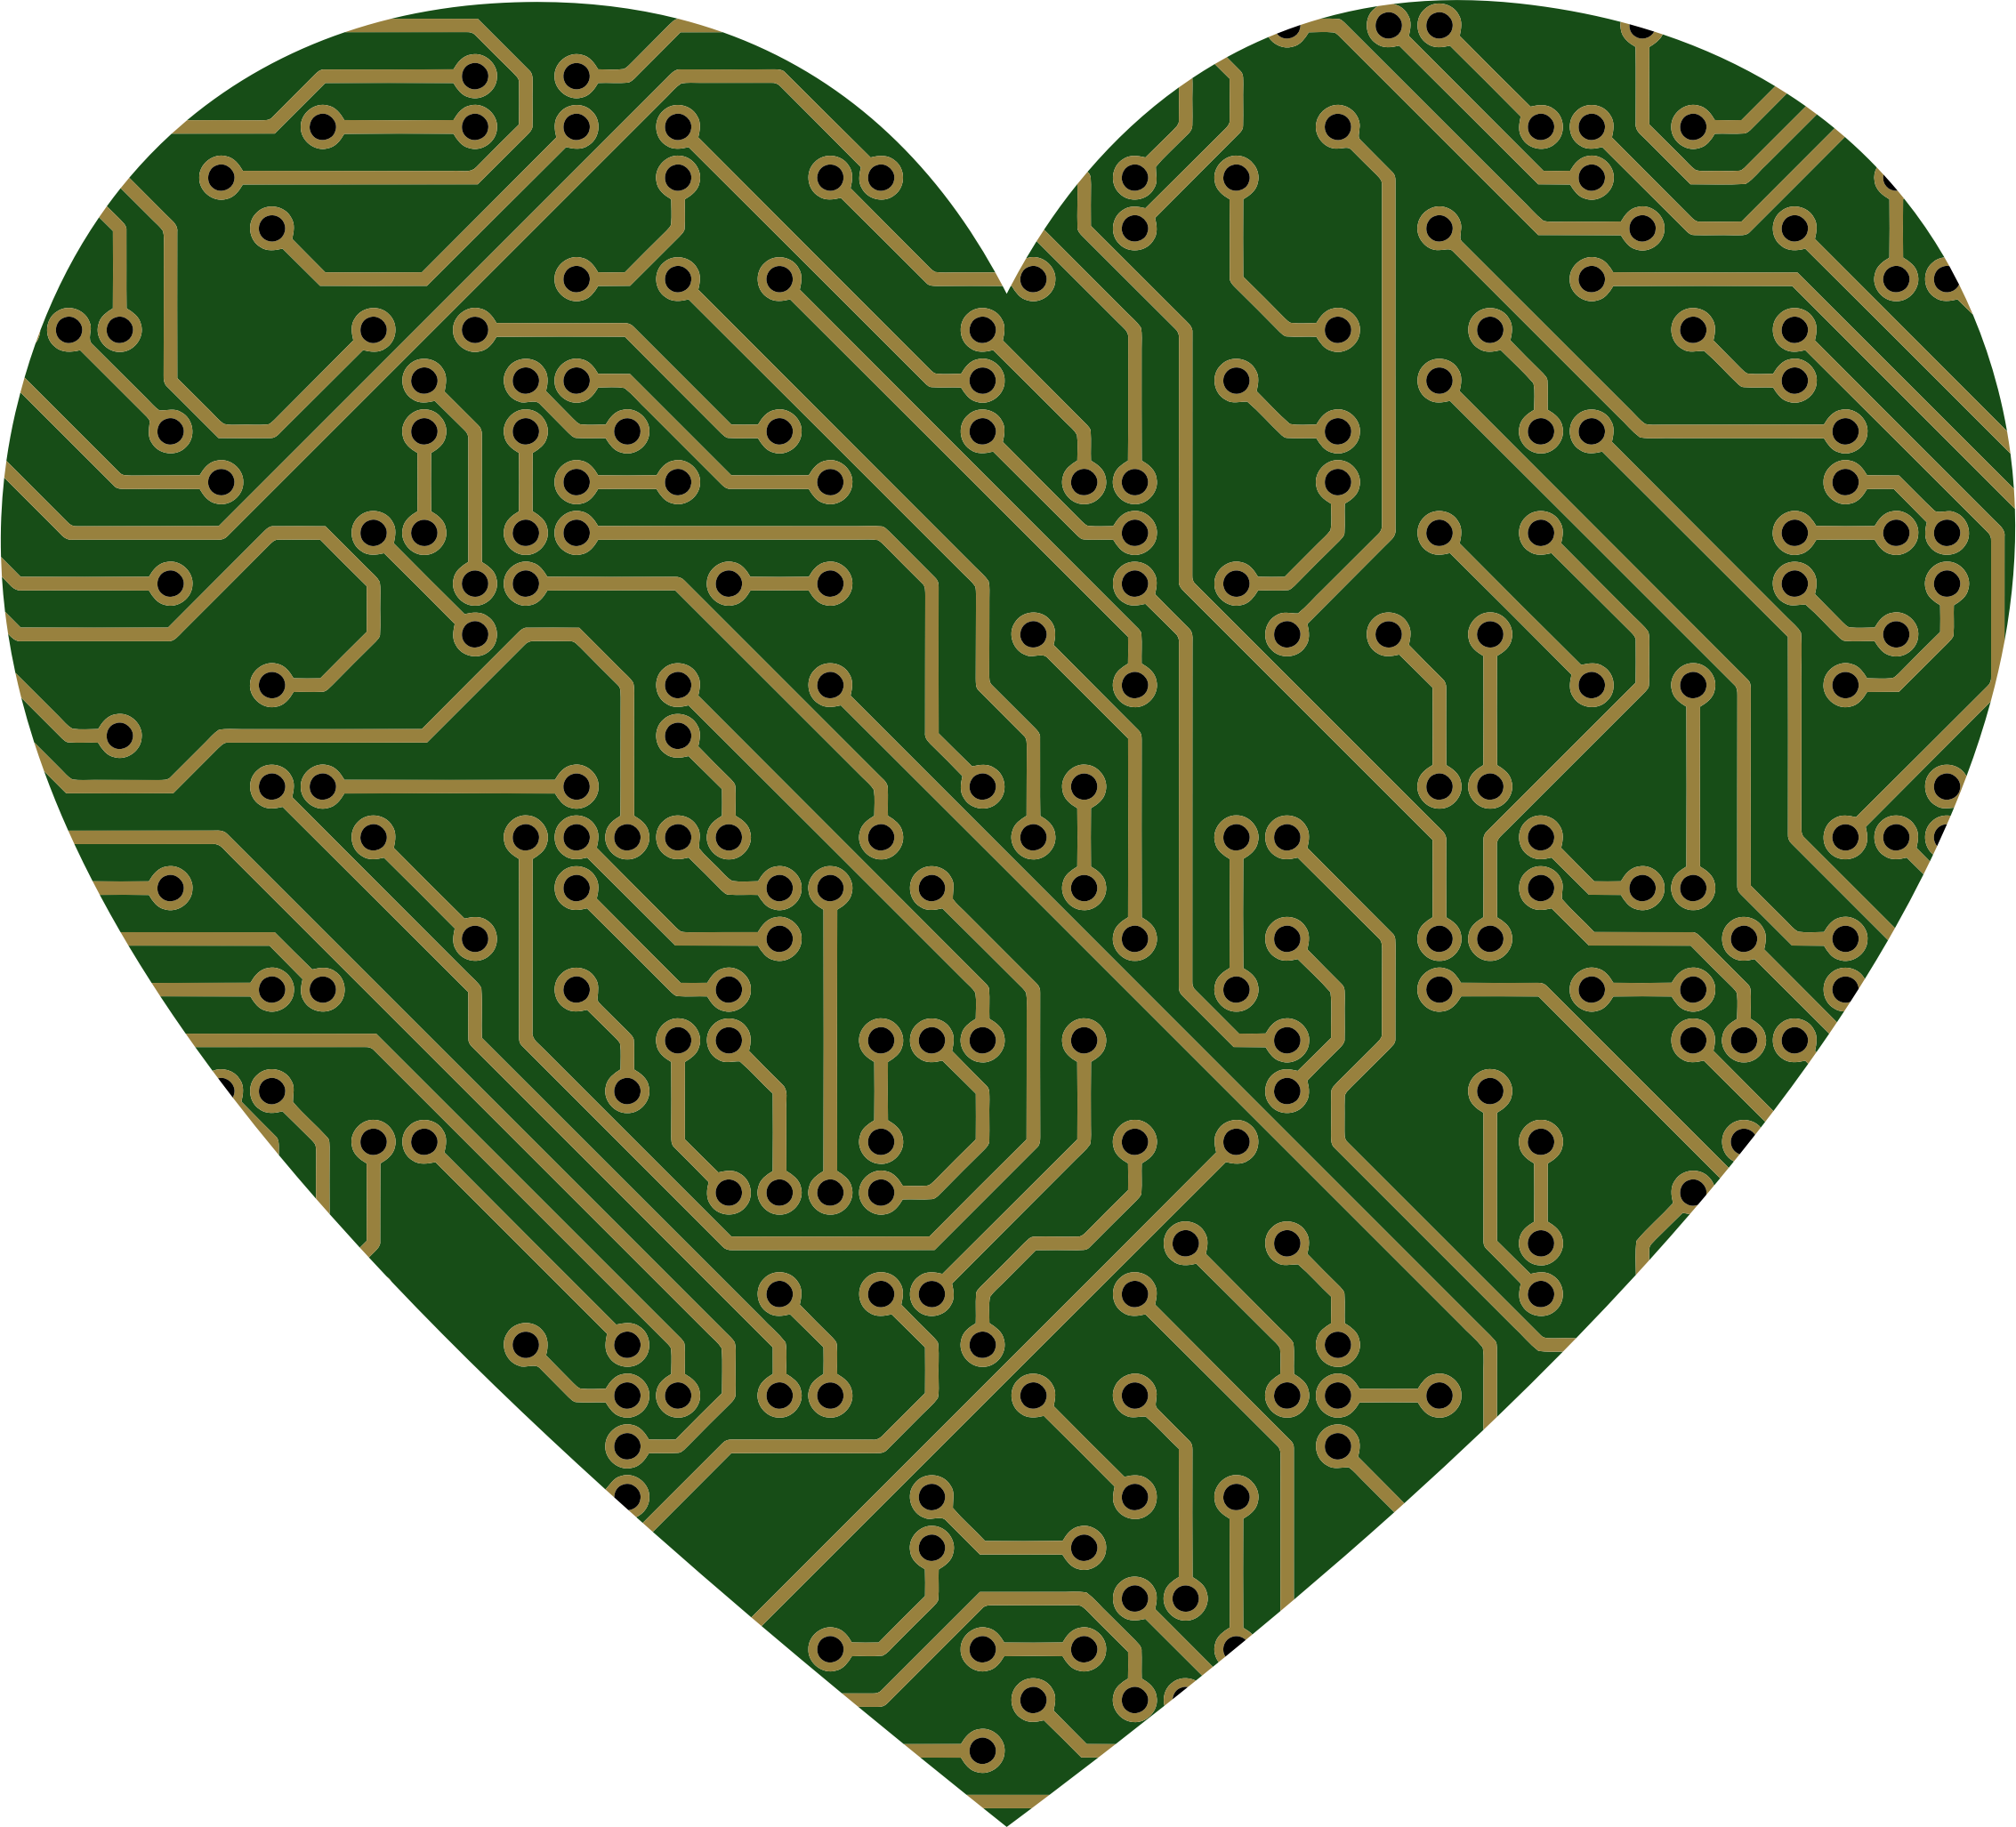 15 Circuit Heart For Free Download On Ya Webdesign Of Printed Board Illustration A Green Icons Stock